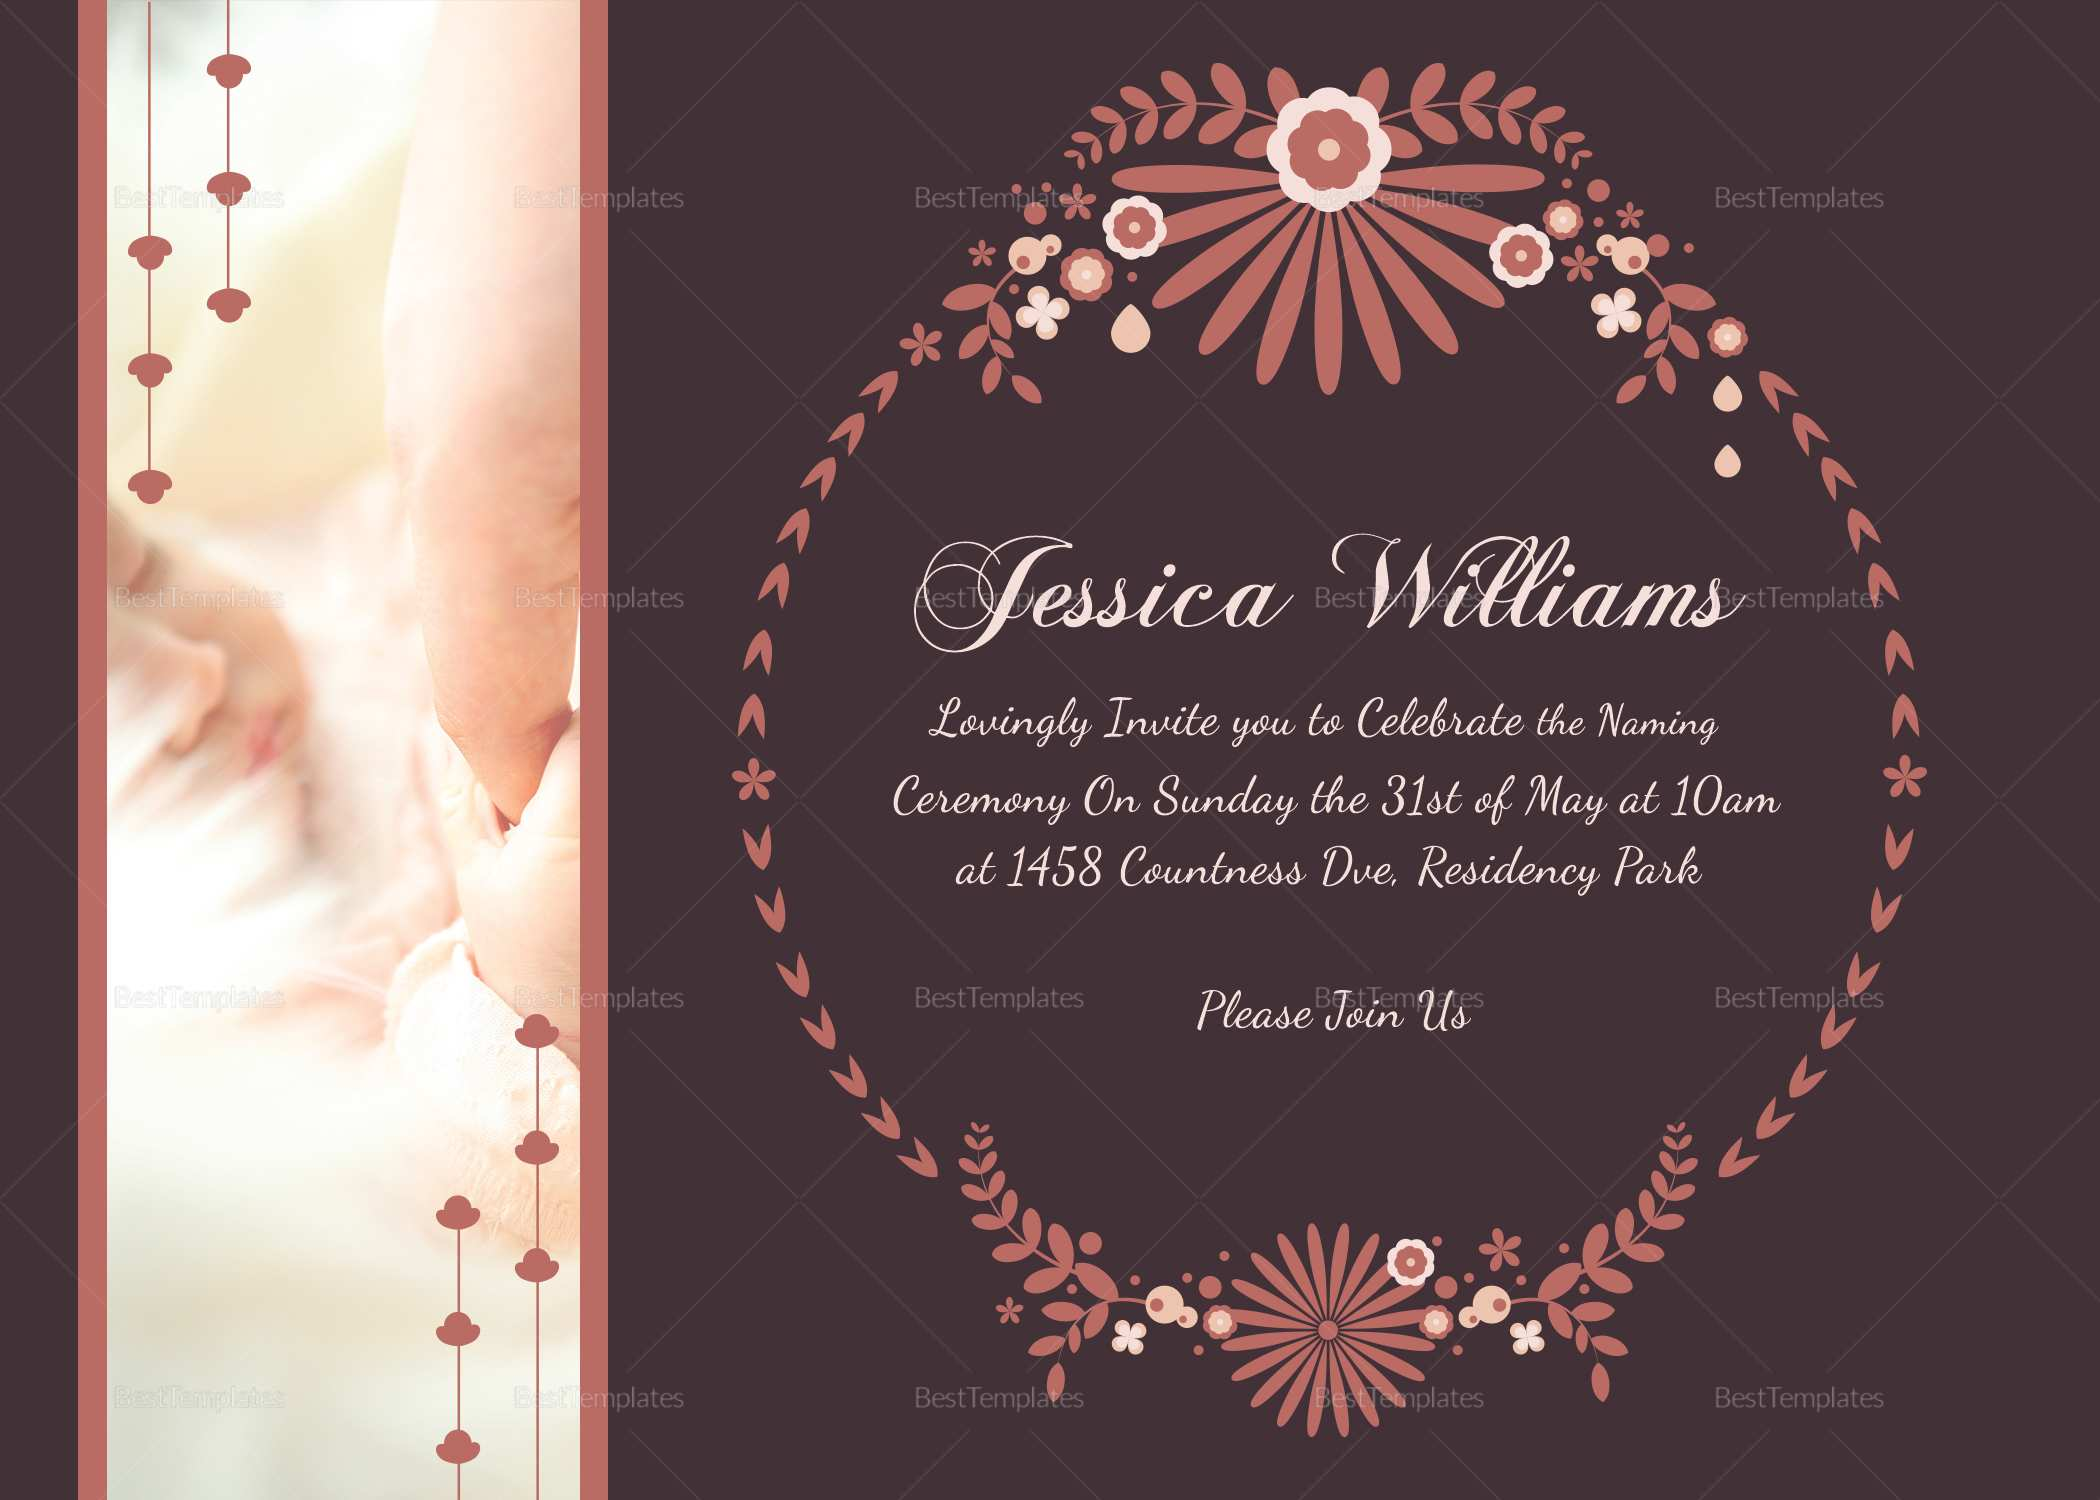 36 The Best Invitation Card Template For Naming Ceremony Photo for Invitation Card Template For Naming Ceremony